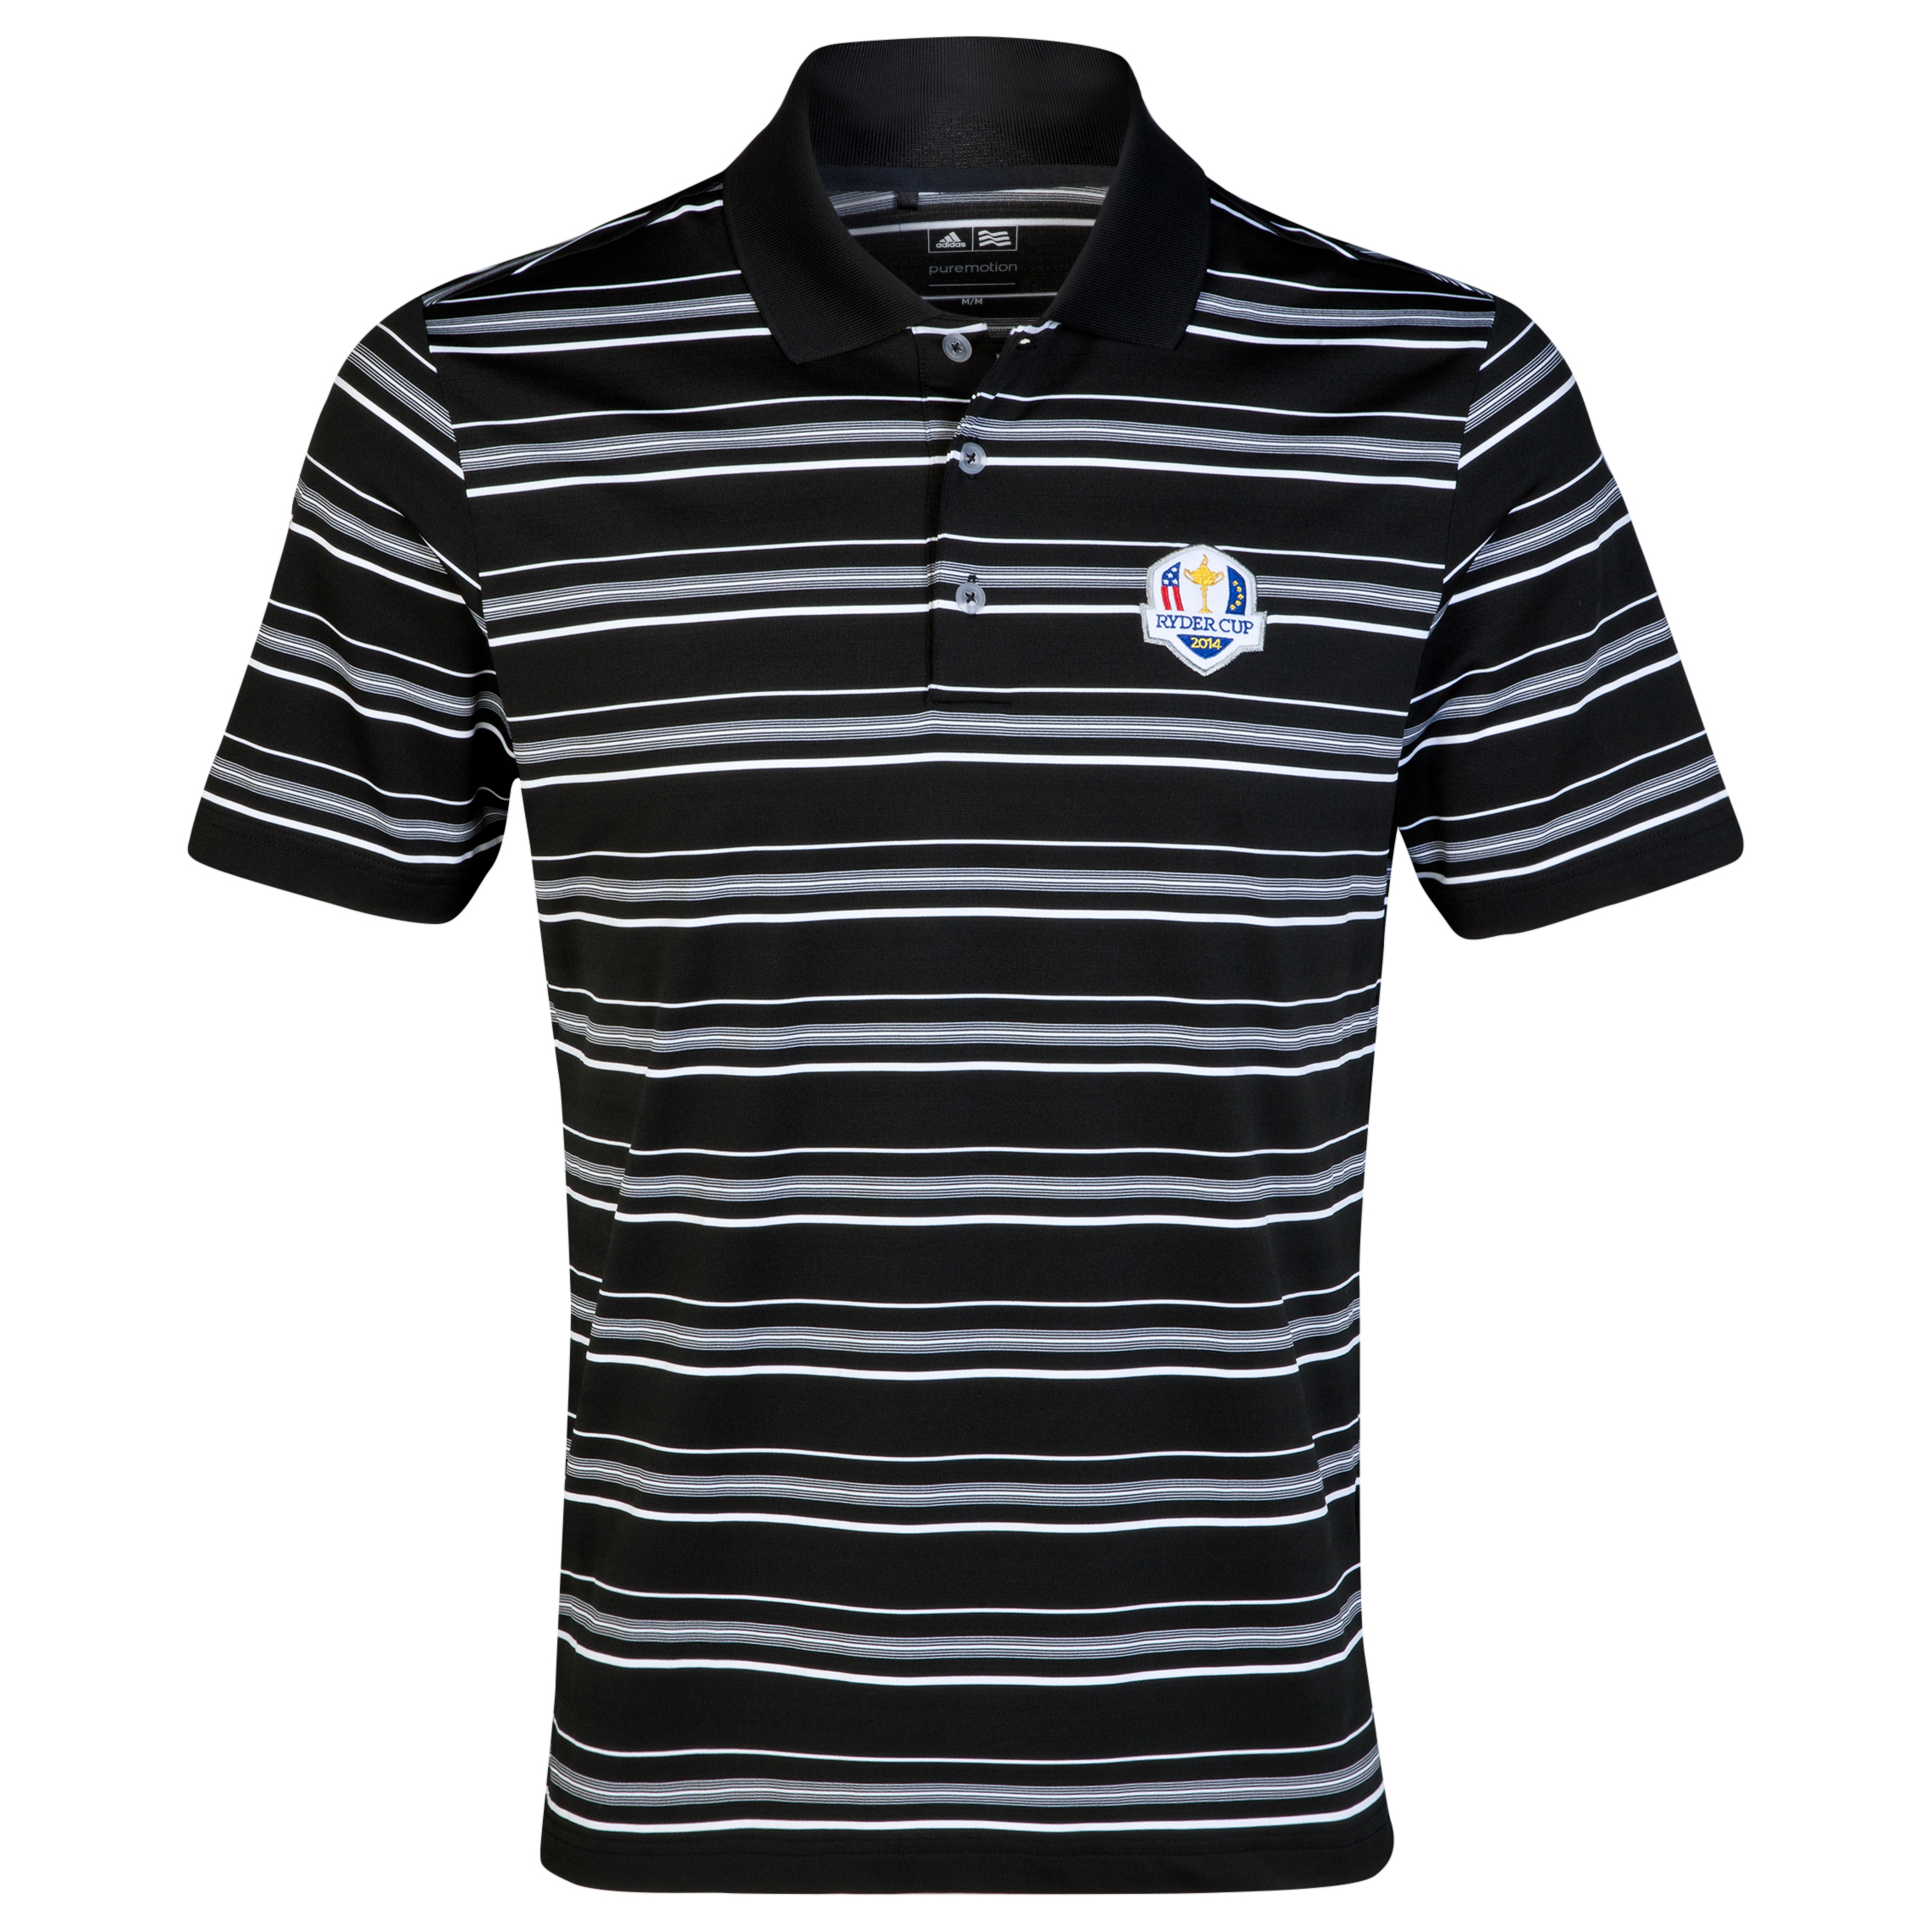 The 2014 Ryder Cup adidas ClimaLite 2-Colour Stripe Polo Black